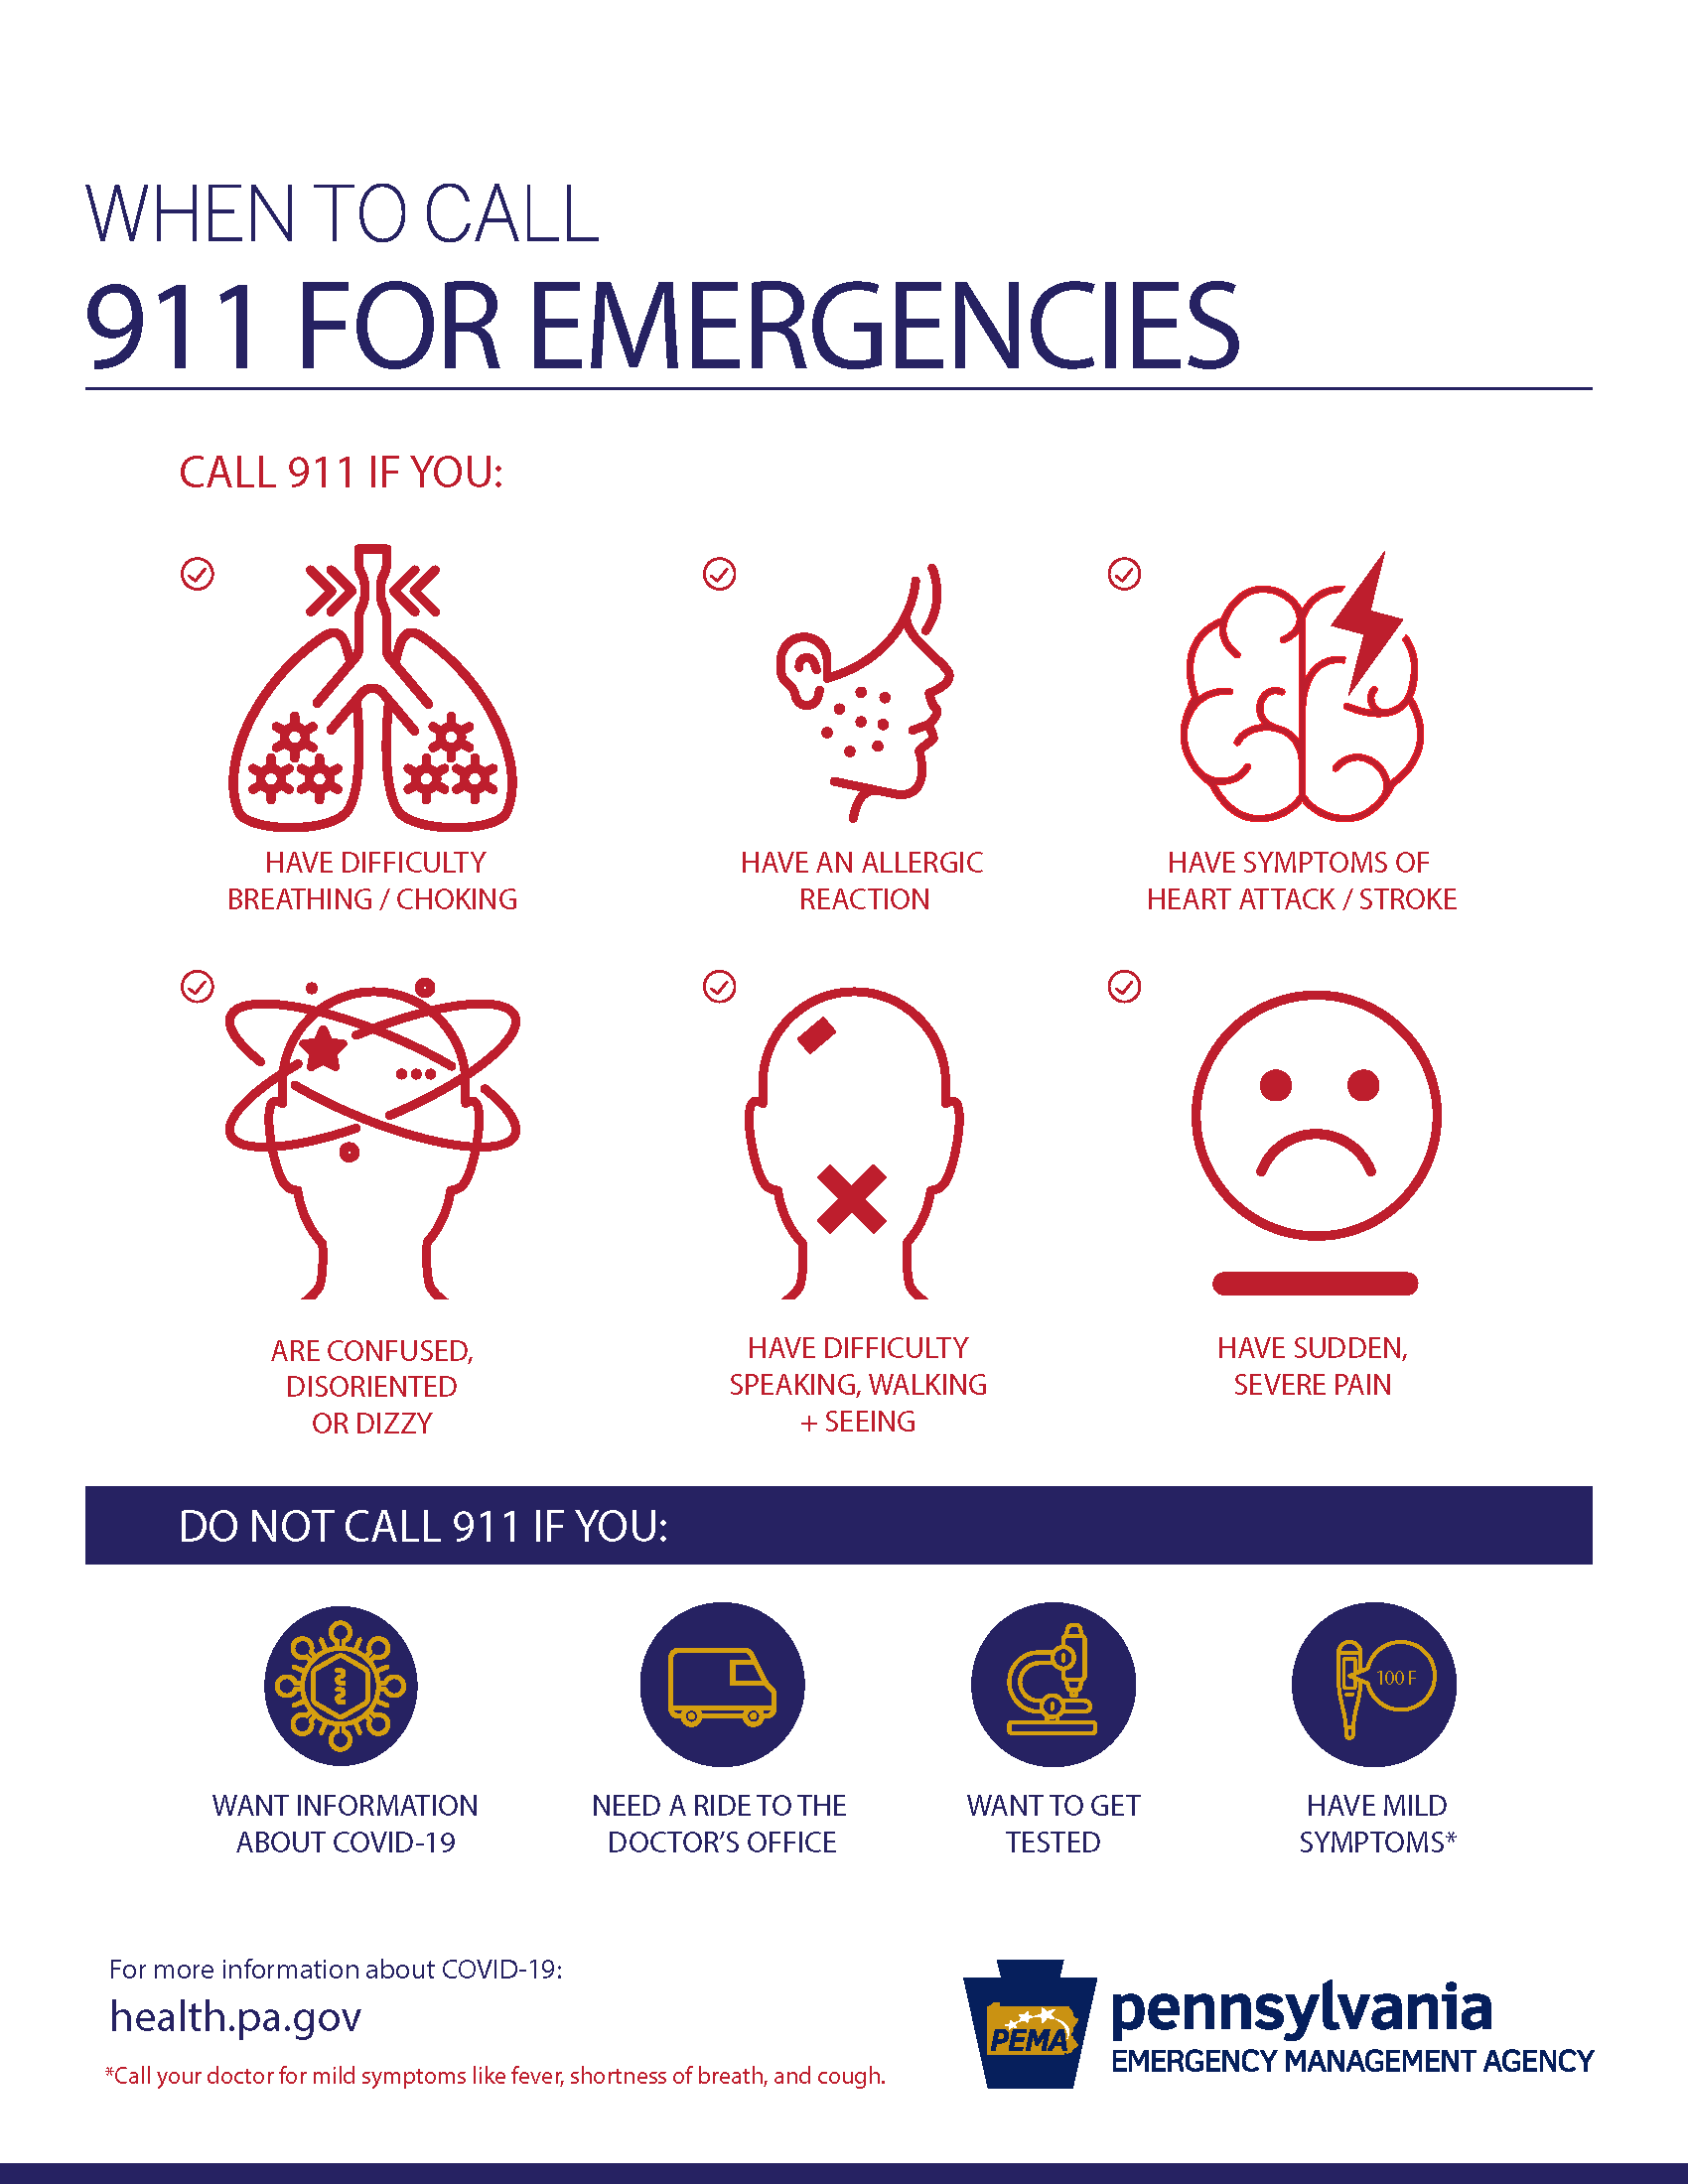 When to call 911 for COVID-19